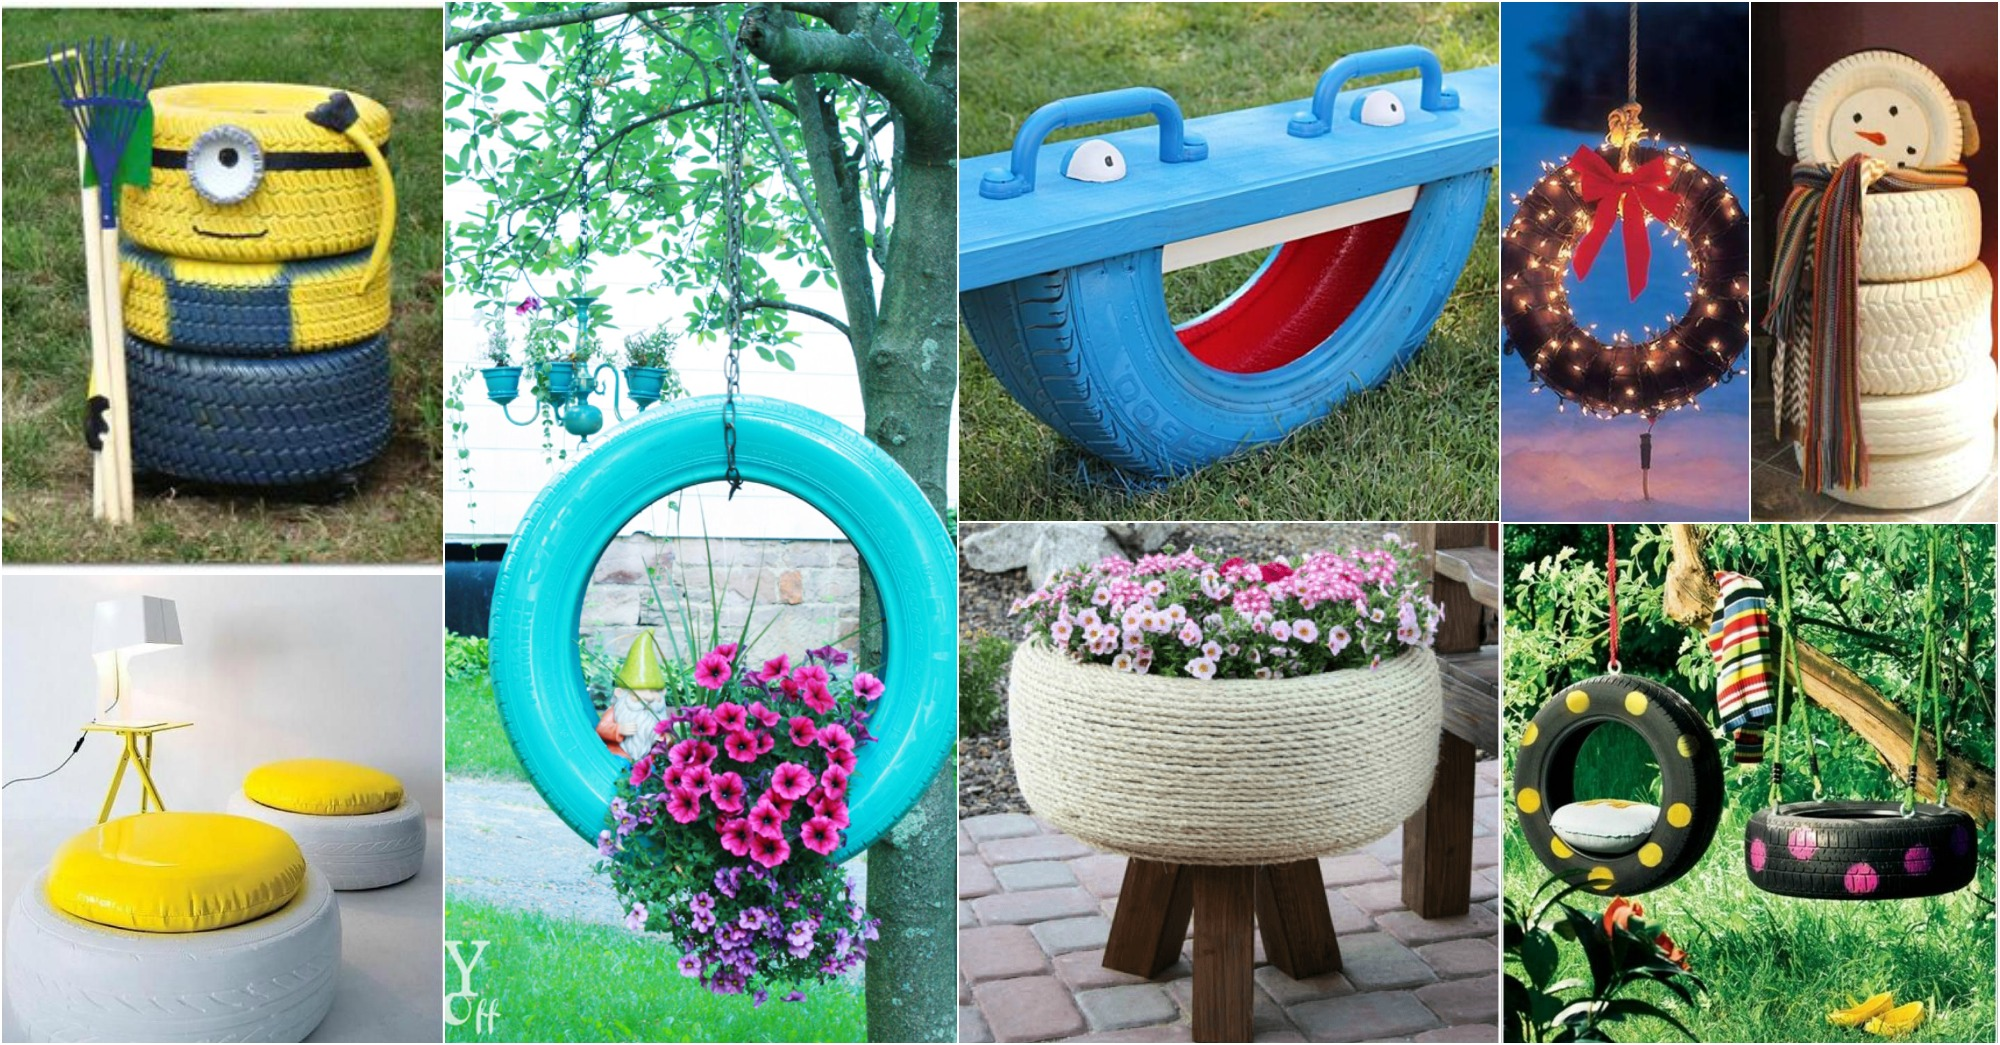 15 diy amazing old tire reuse ideas for Decoration ideas